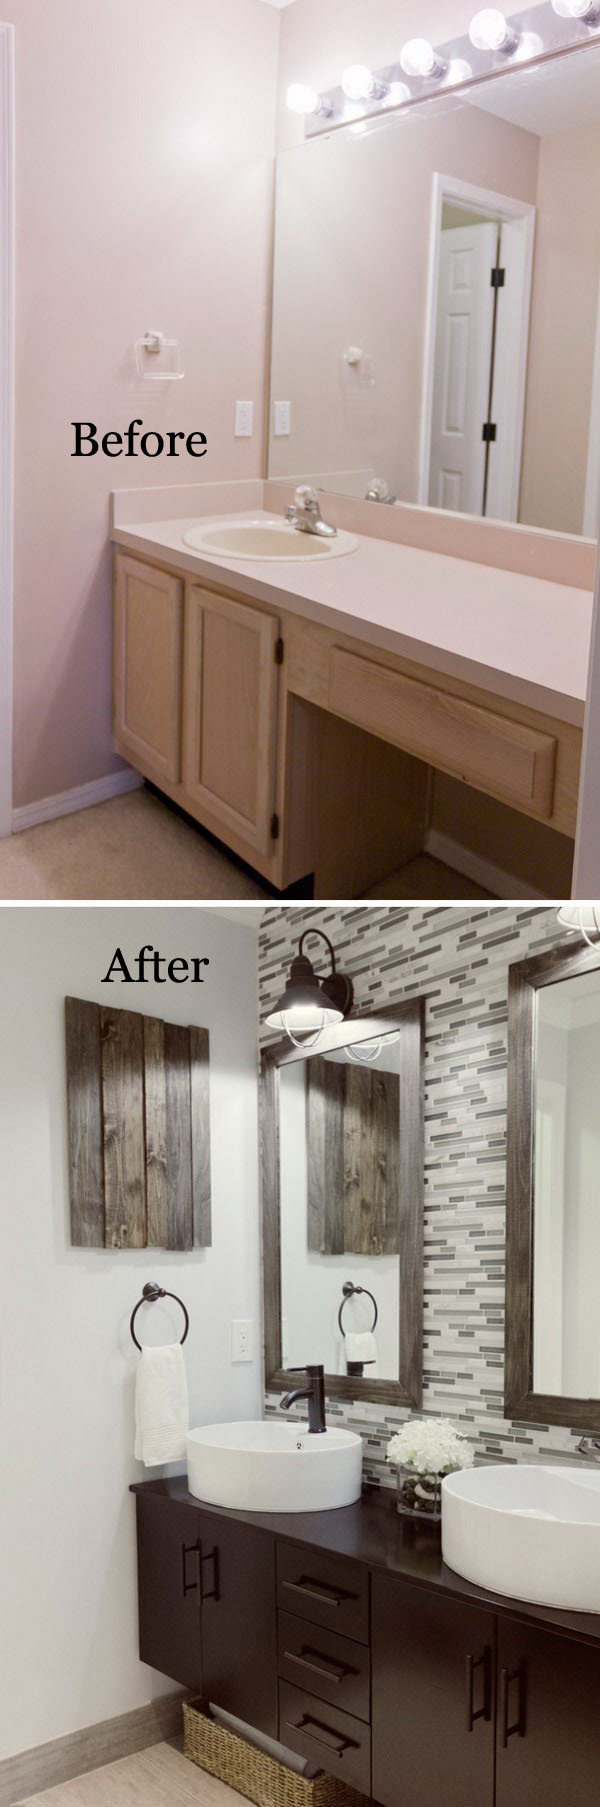 Before and after 20 awesome bathroom makeovers hative for Bathroom renovations